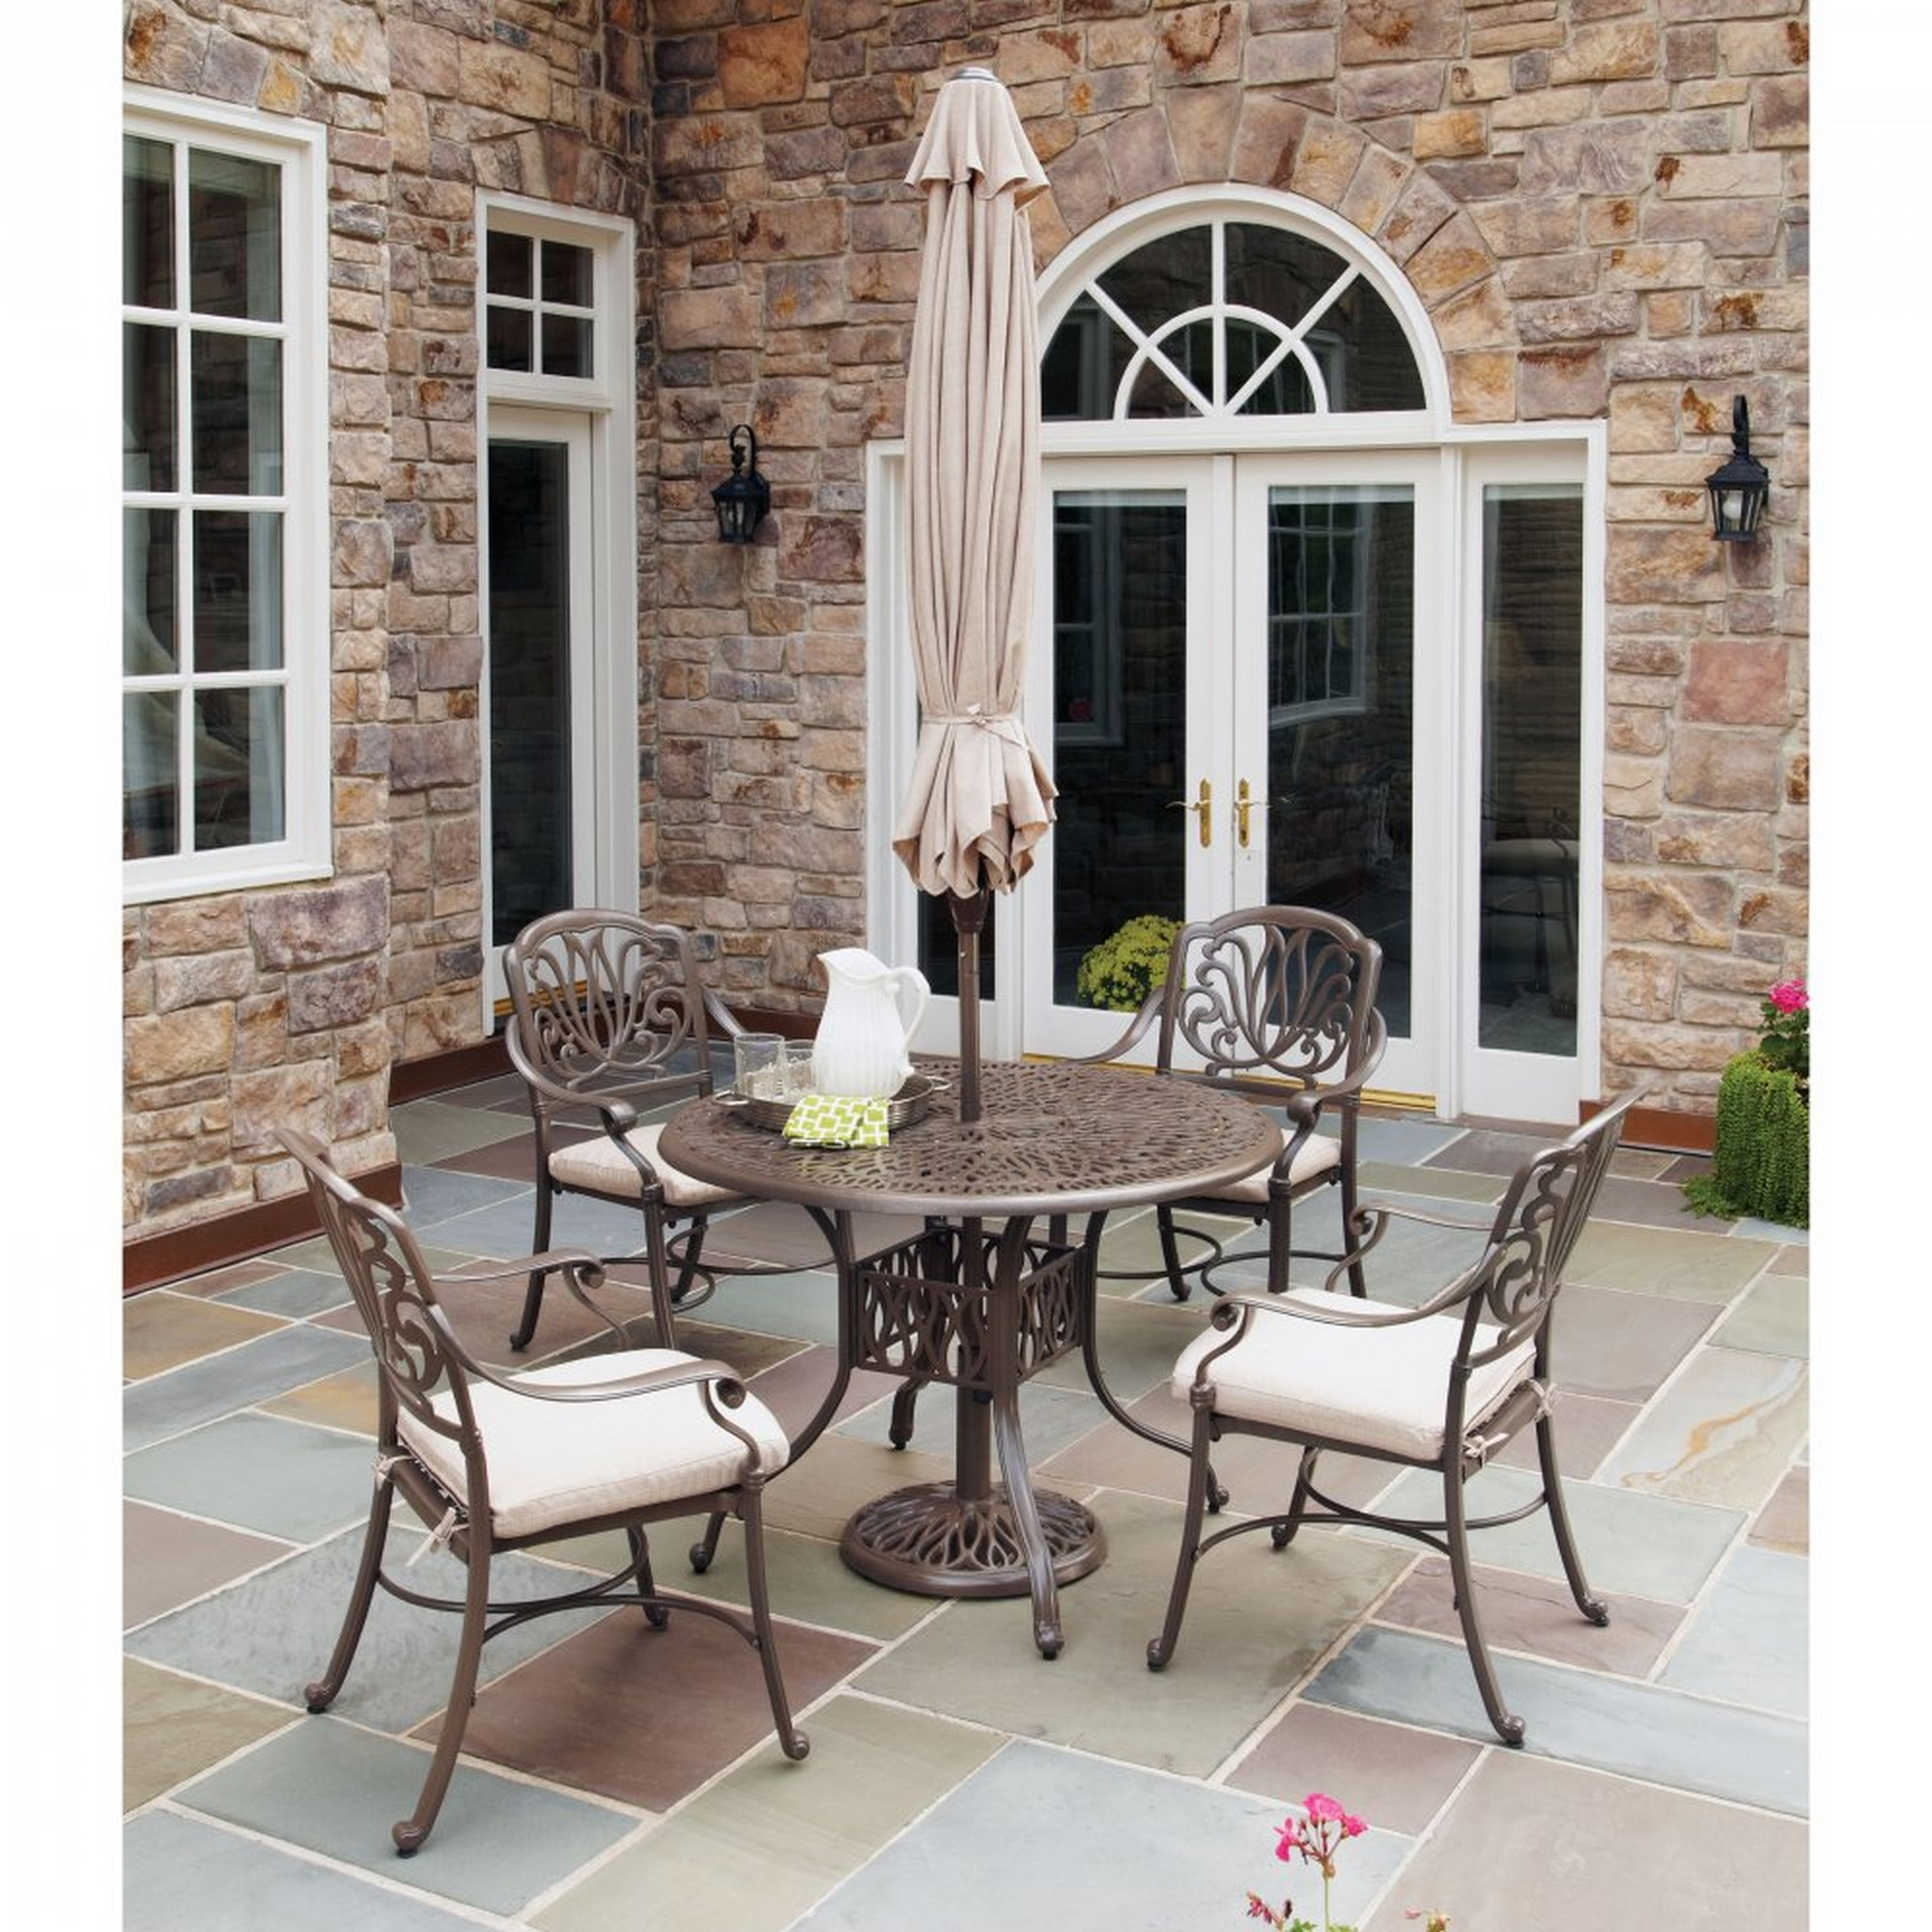 Capri 6 Piece Outdoor Dining Set by homestyles at Value City Furniture